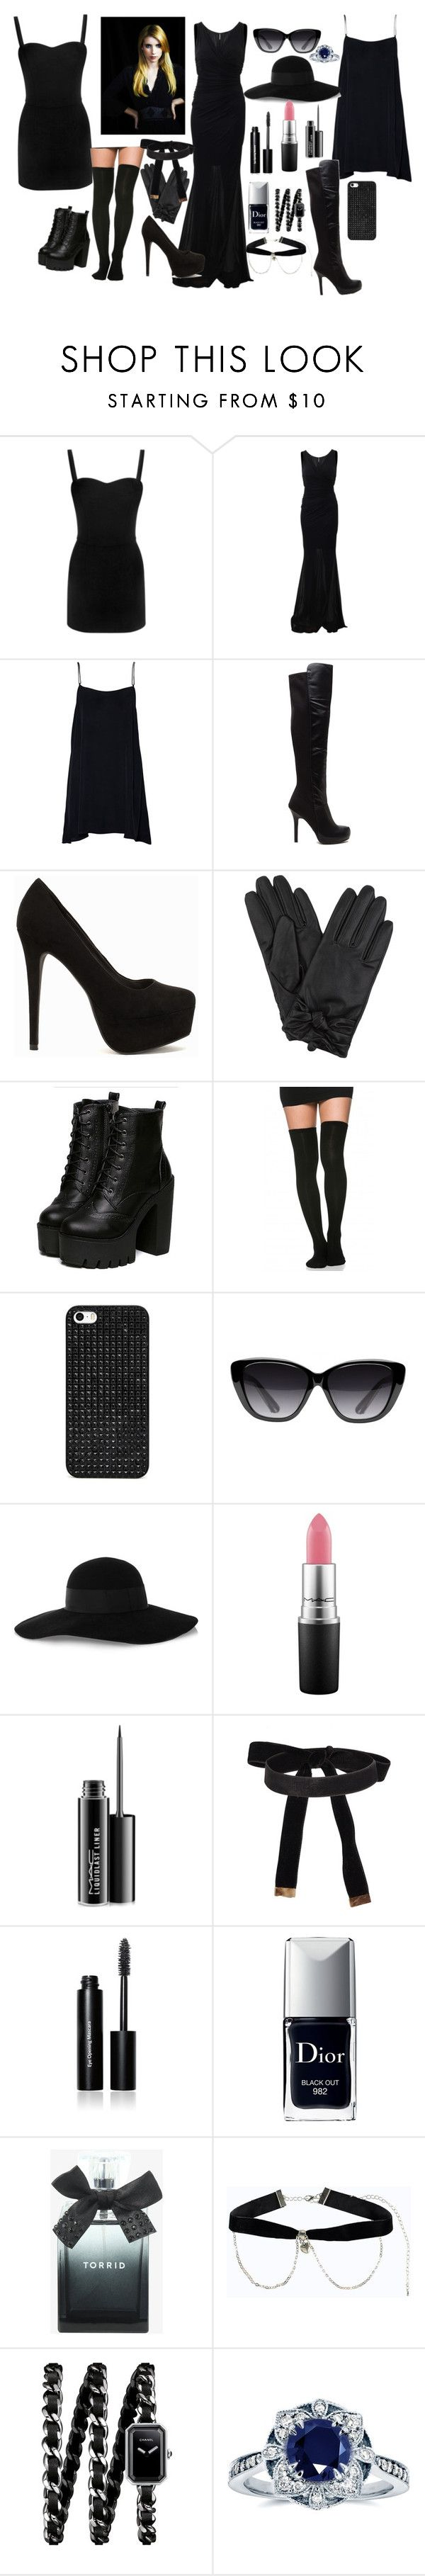 """Madison Montgomery Style."" by aniludragneel ❤ liked on Polyvore featuring Alexander McQueen, Blumarine, Nly Shoes, BaubleBar, Elizabeth and James, Eugenia Kim, MAC Cosmetics, Bobbi Brown Cosmetics, Christian Dior and Torrid"